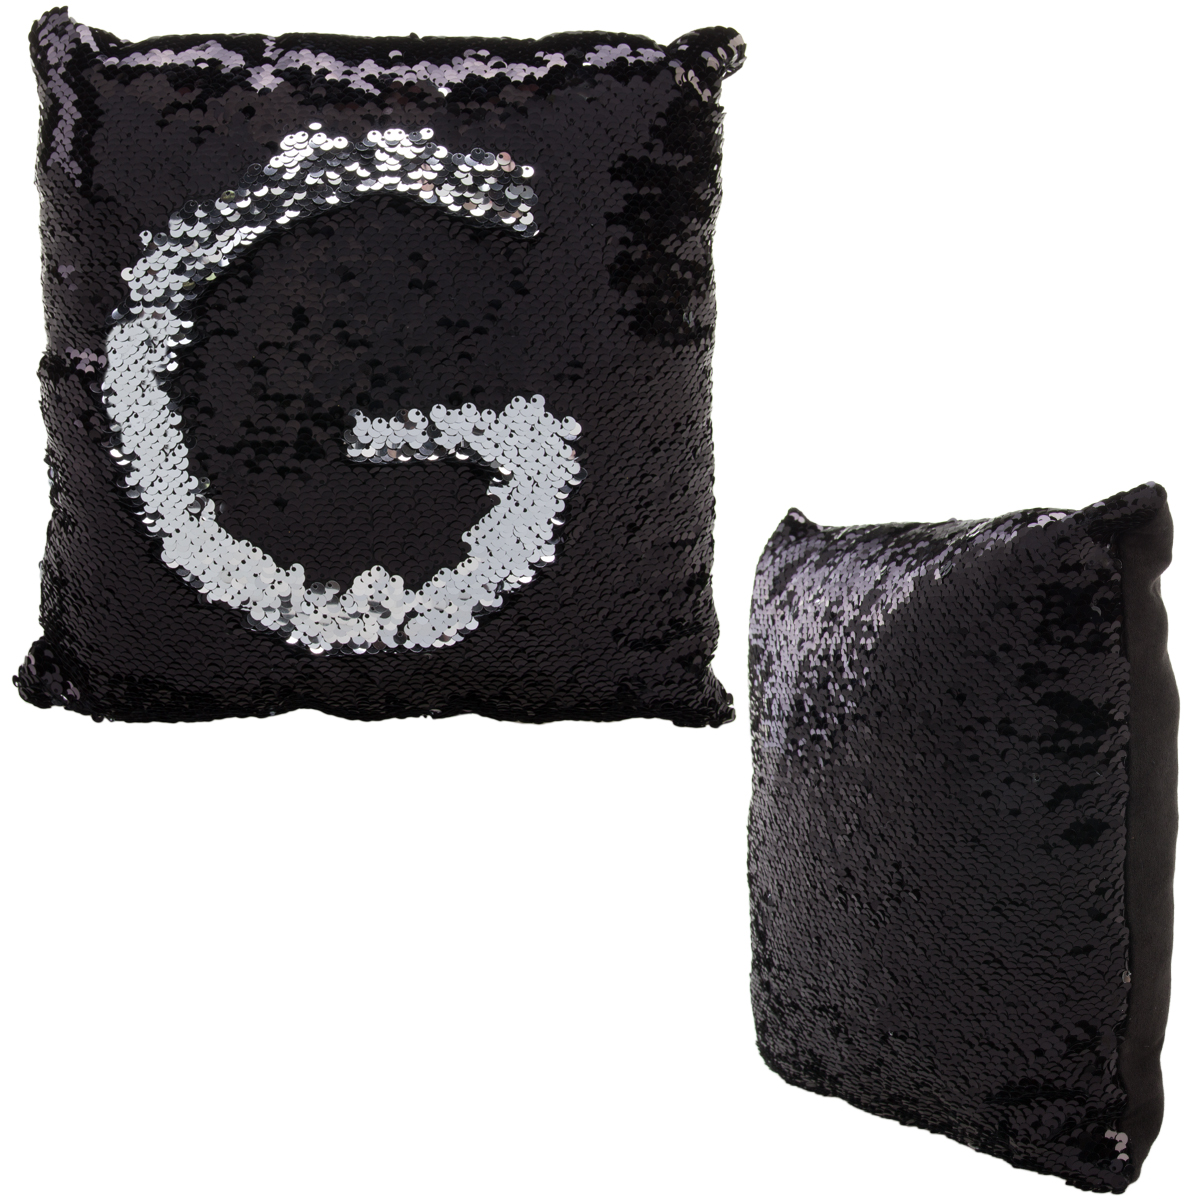 Fun Throw Pillows For Bed : Sequin Mermaid Throw Pillow Color Changing Decorative Fun Bed Couch Teens Girls eBay